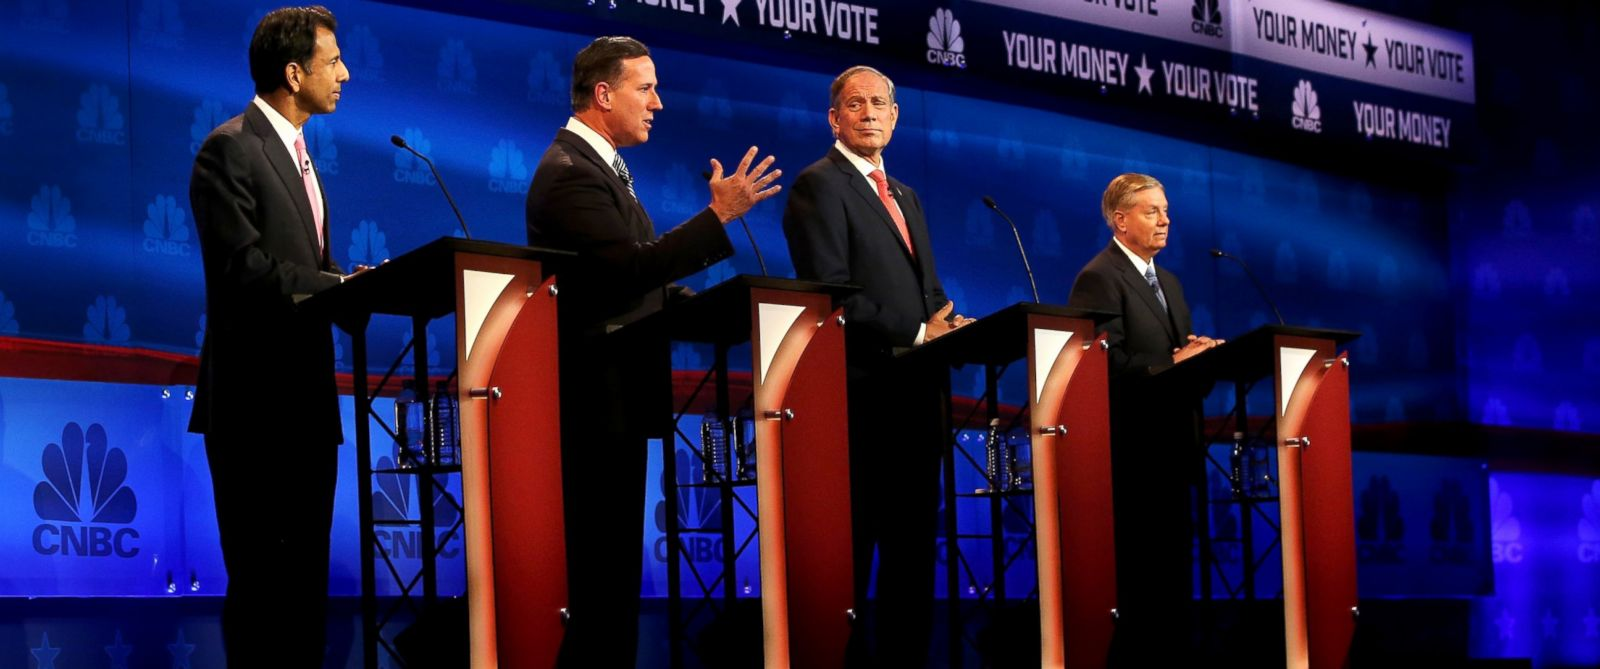 PHOTO: Louisiana Governor Bobby Jindal, Rick Santorum, George Pataki, and Sen. Lindsey Graham (R-SC) take part in the CNBC Republican Presidential Debate at University of Colorados Coors Events Center, Oct. 28, 2015, in Boulder, Colo.